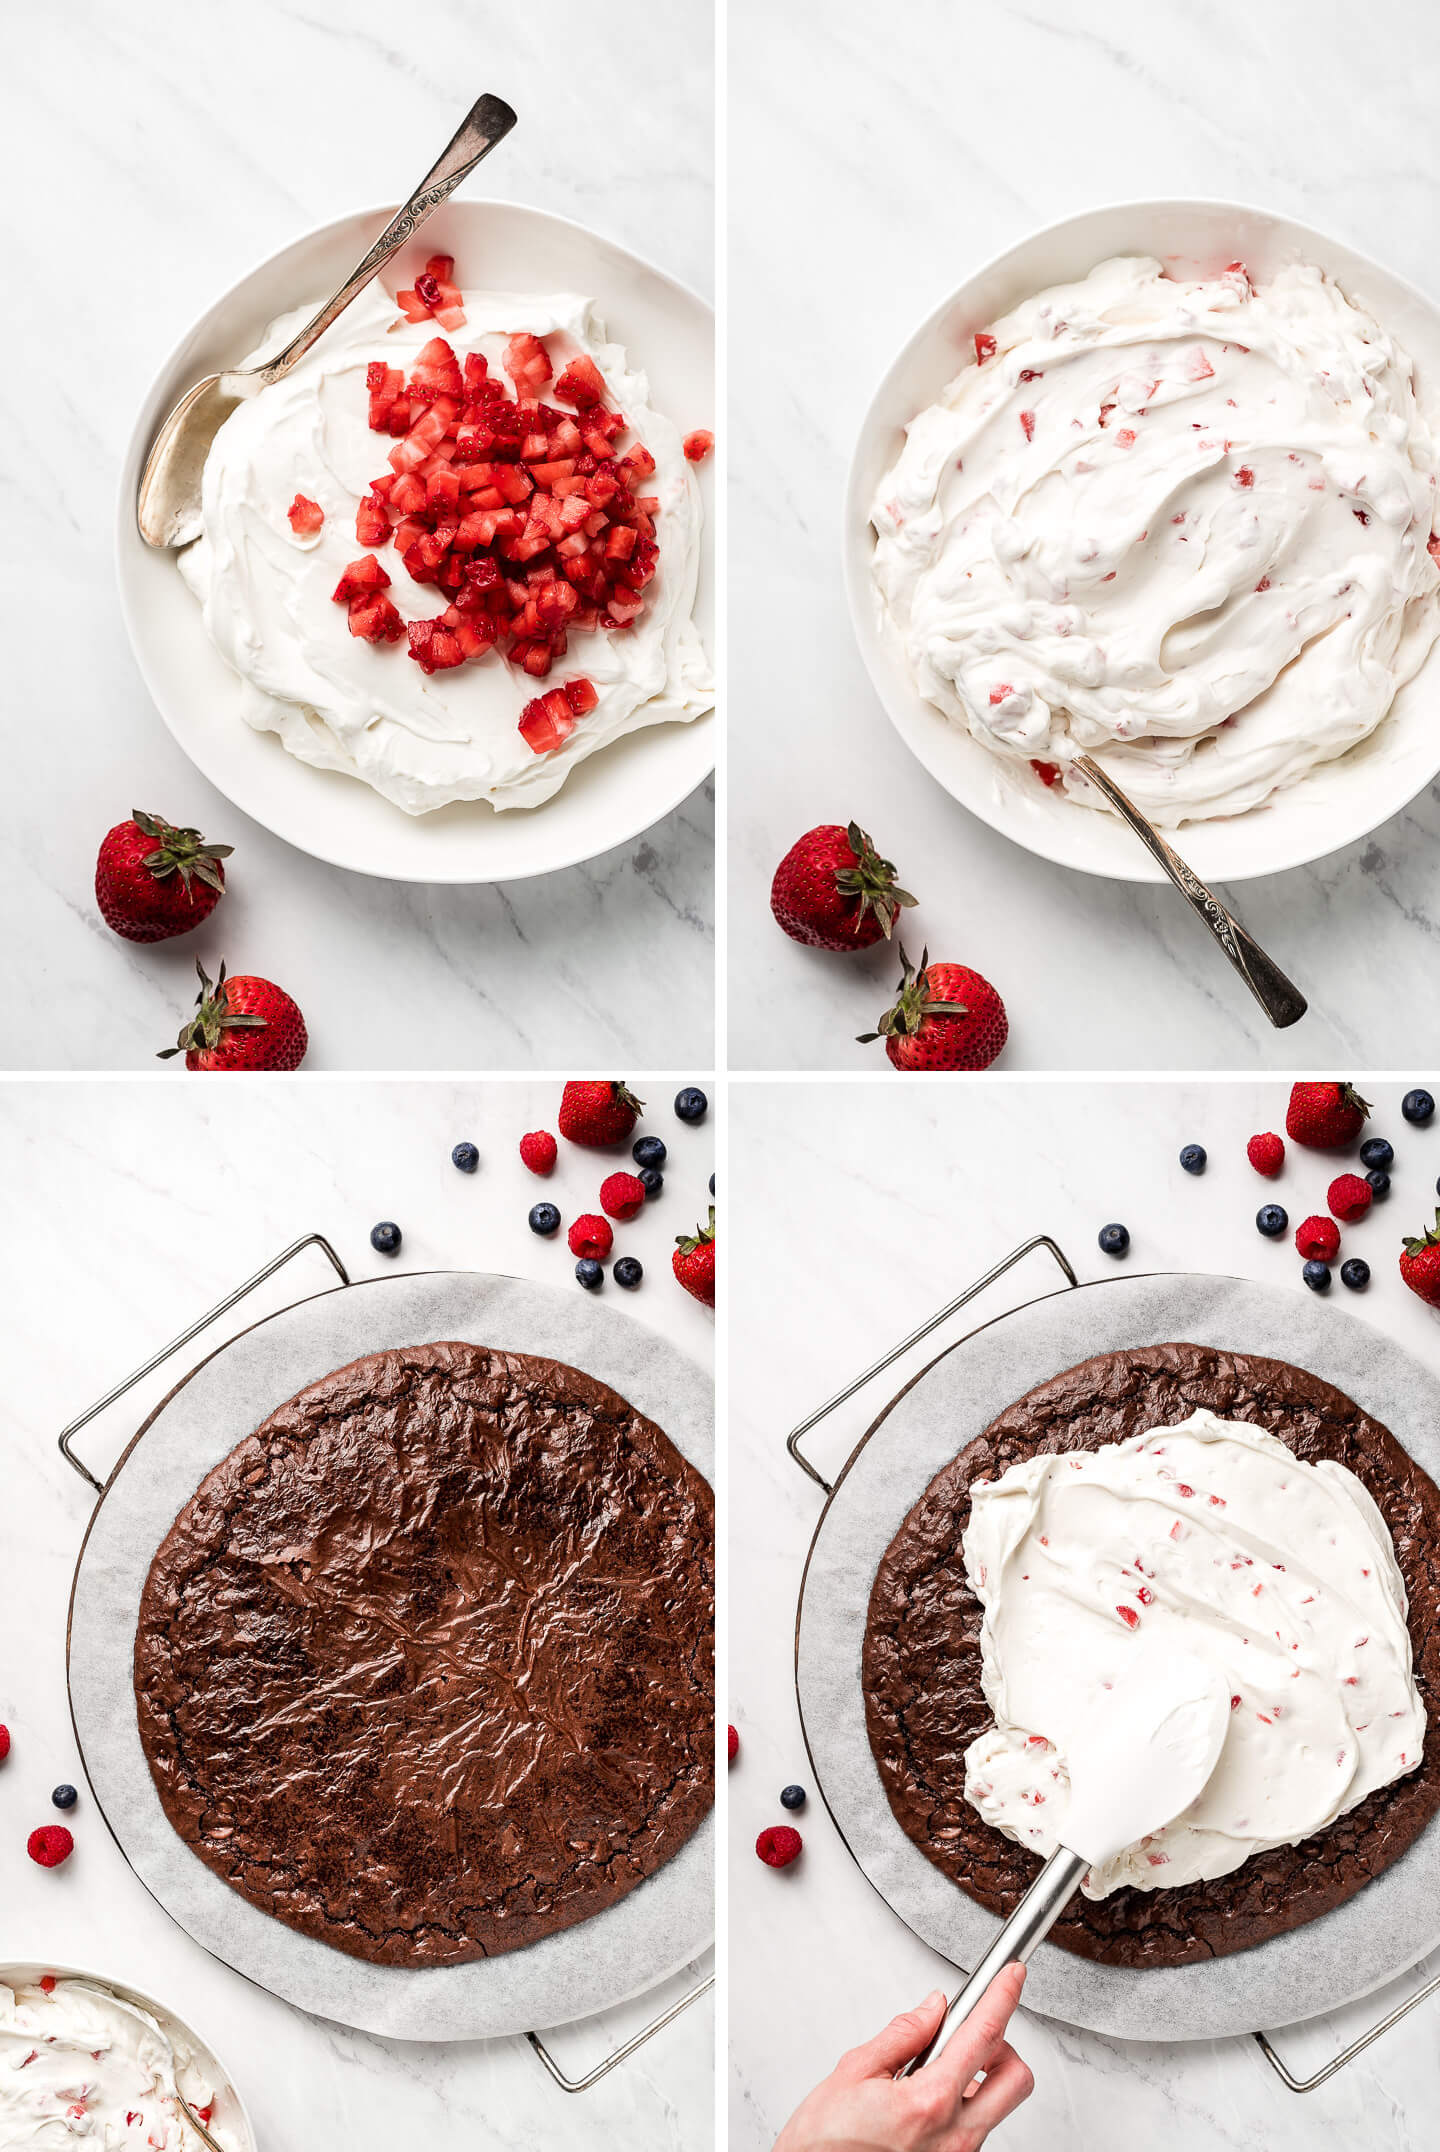 Process shots of mixing strawberries into the whipped cream and cream cheese mixture and then spreading it over the cooked and cooled brownie on the pizza stone.